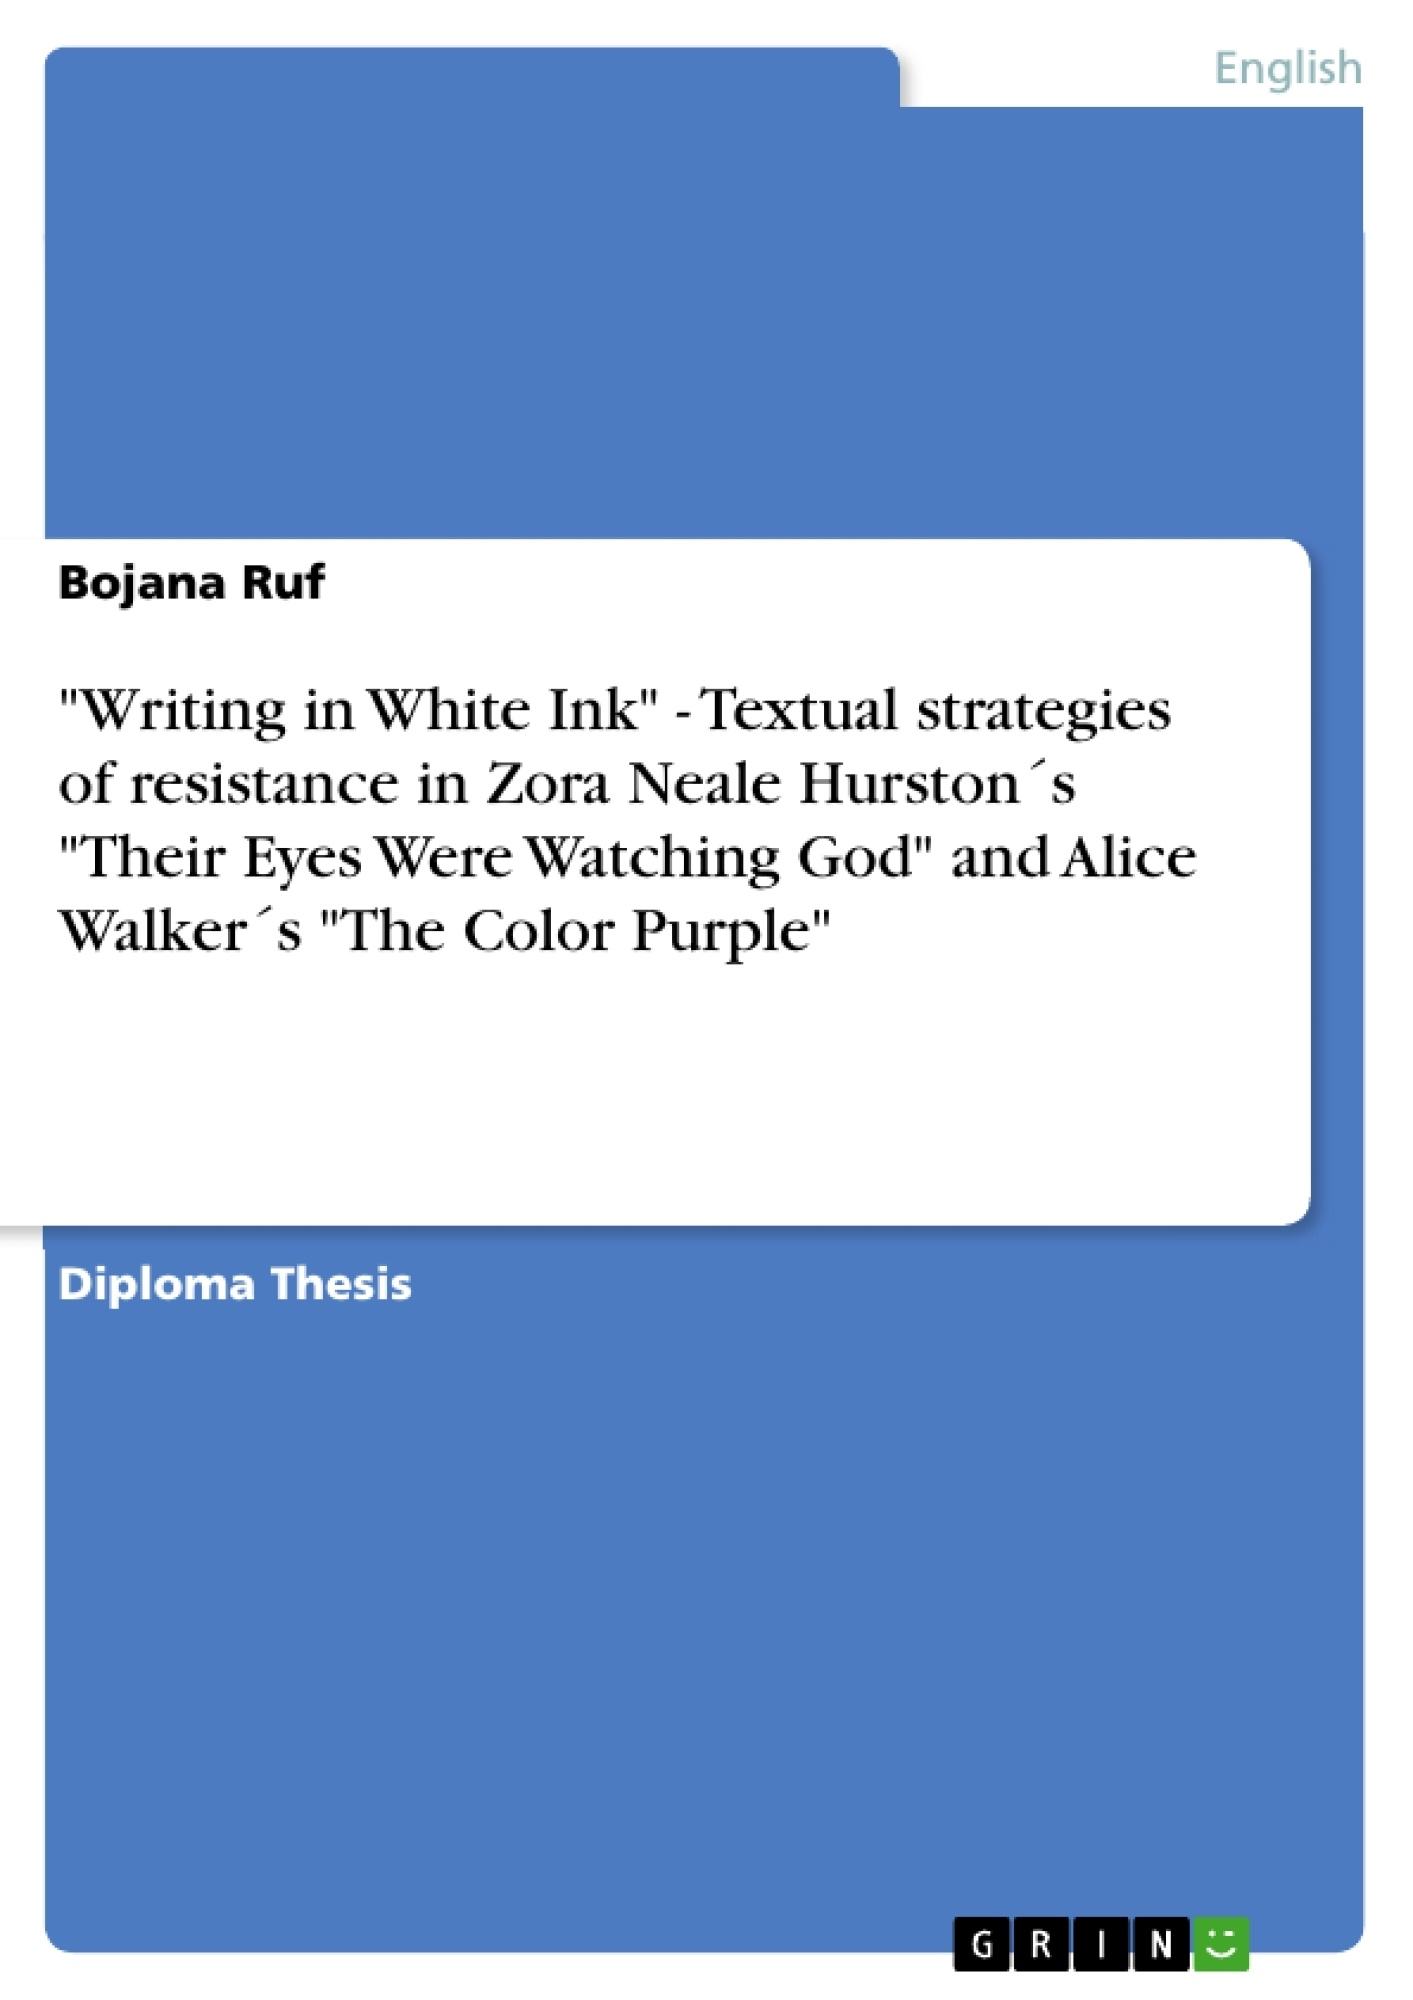 """Title: """"Writing in White Ink"""" - Textual strategies of resistance in Zora Neale Hurston´s """"Their Eyes Were Watching God"""" and Alice Walker´s """"The Color Purple"""""""